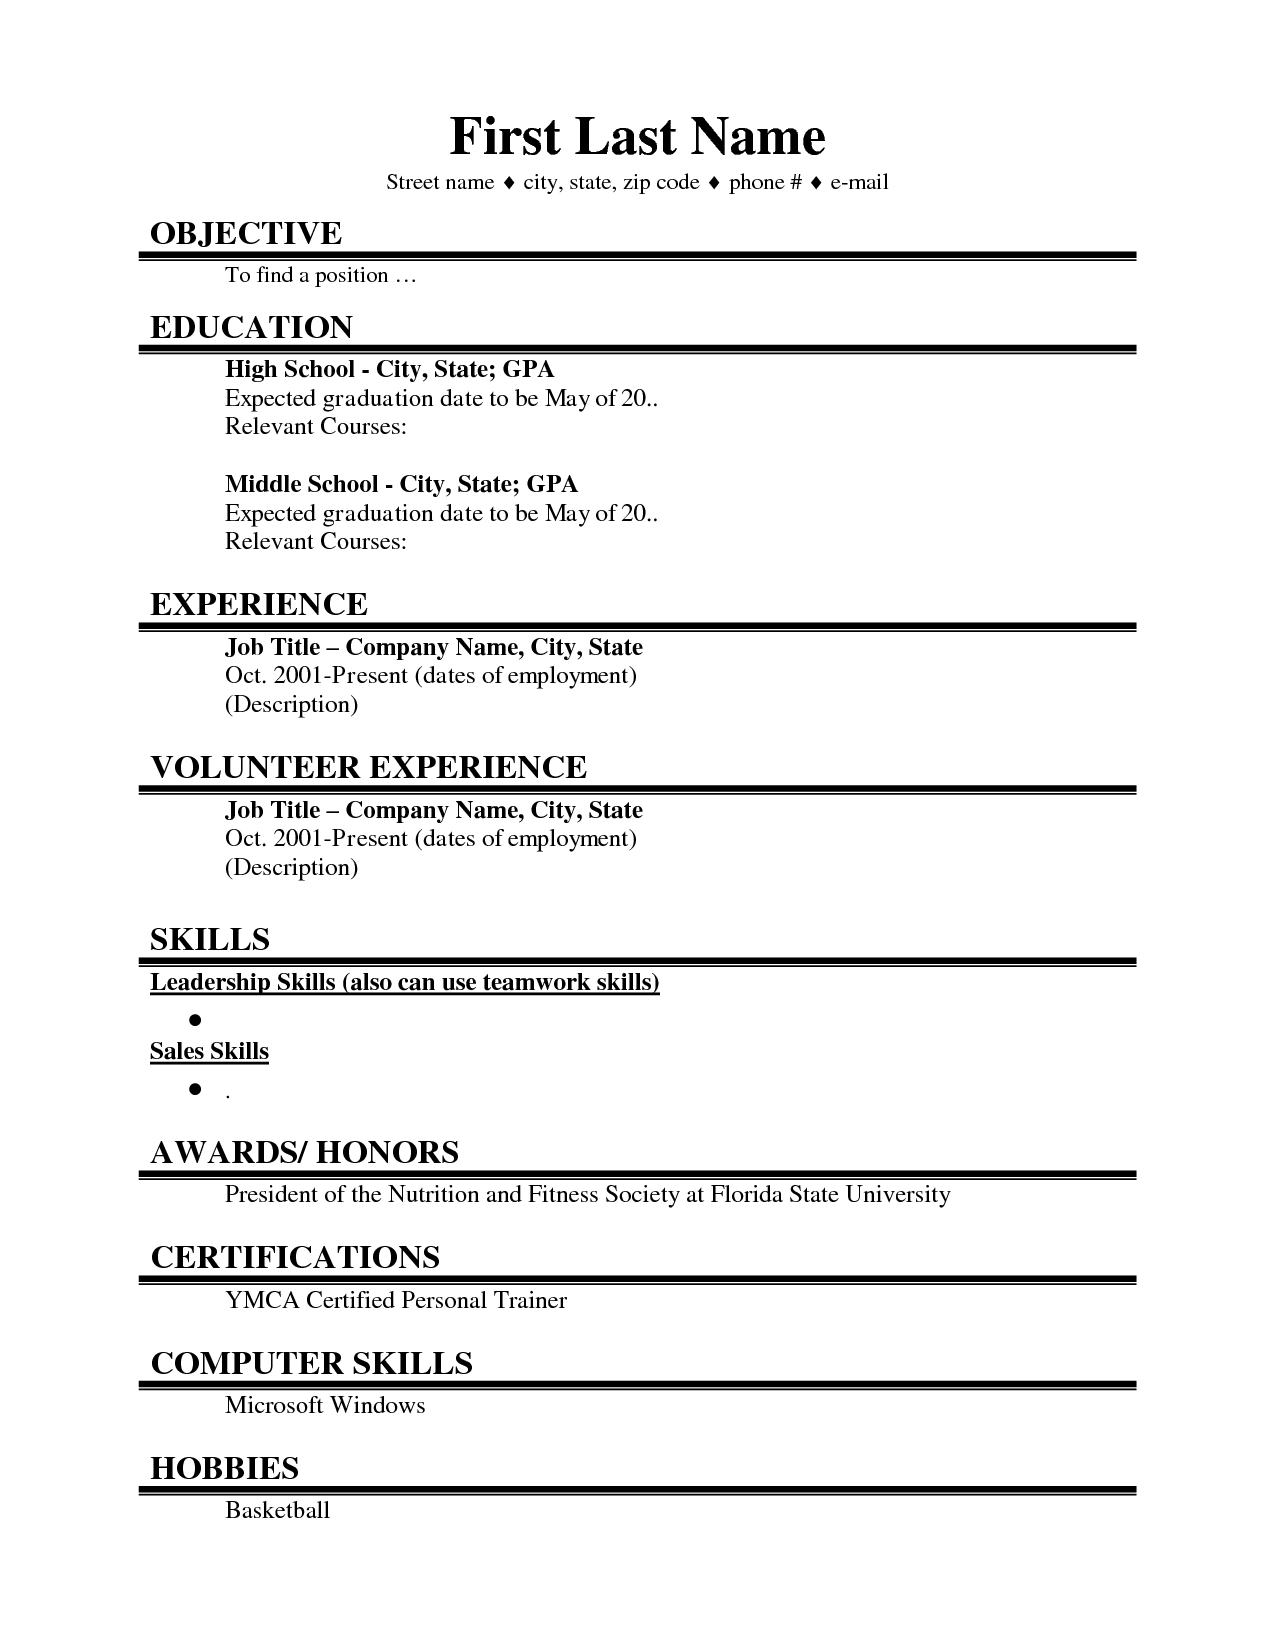 First Job High School Student Resume Templates